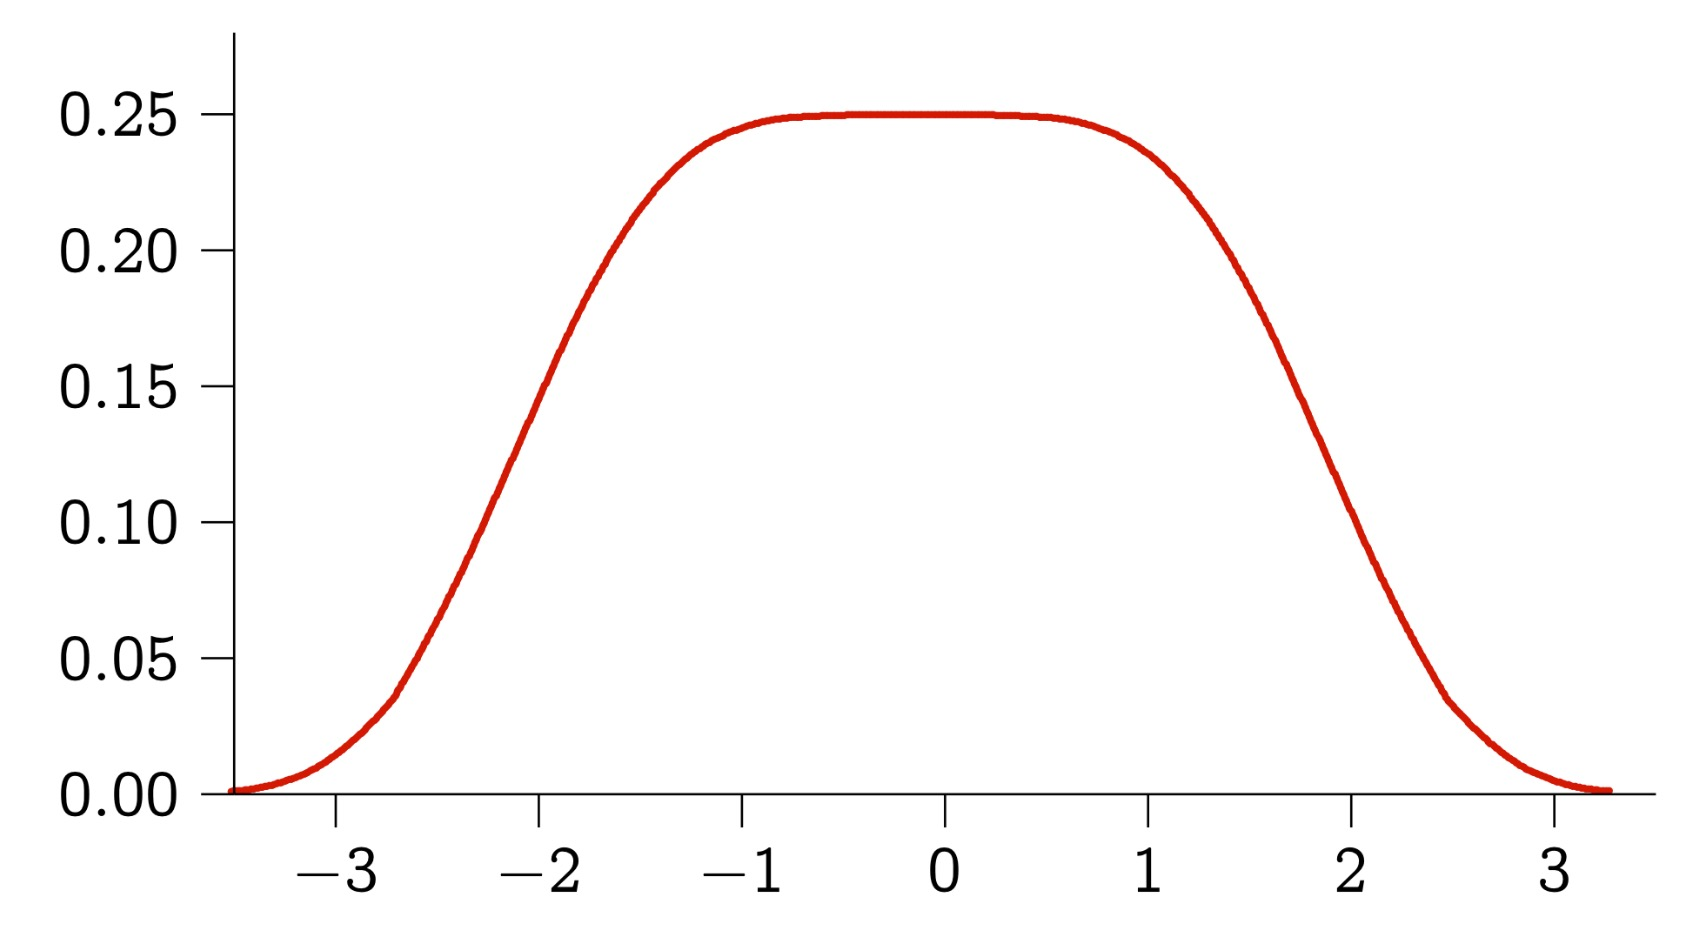 RandomHarmonicSeriesDistribution